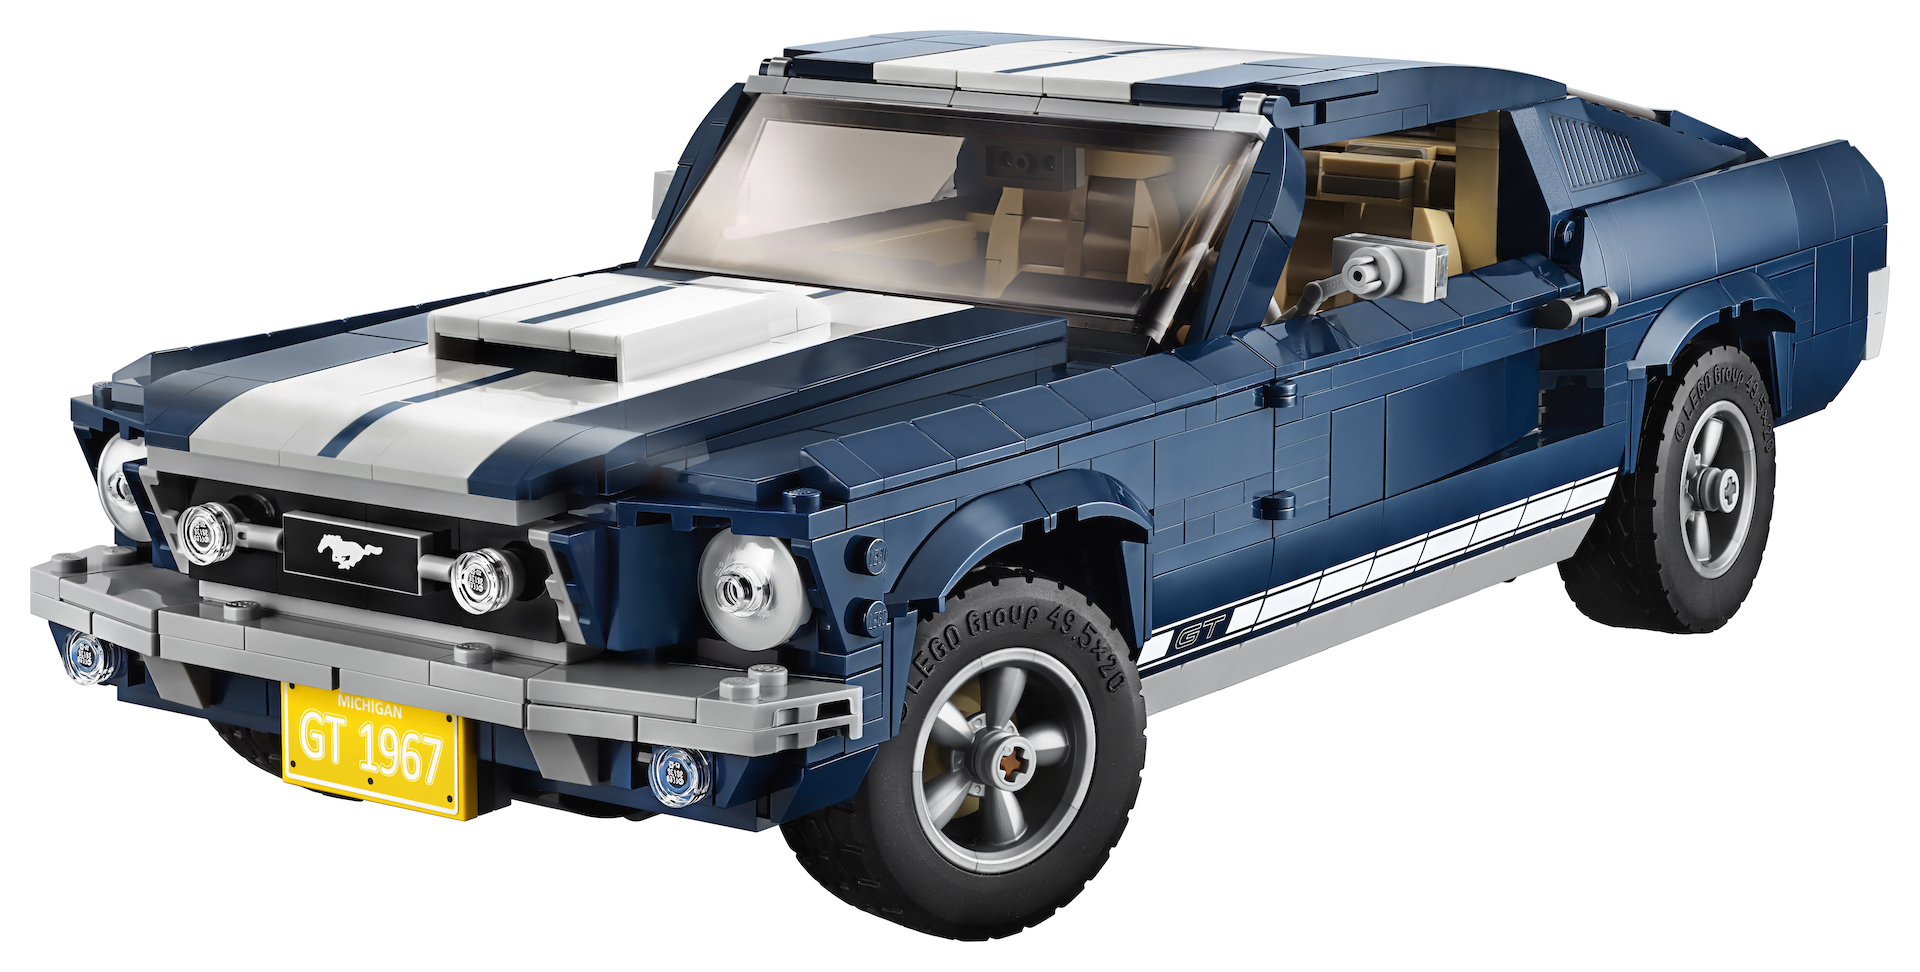 Build Your Own Ford >> Brick By Brick Build Your Own Lego 1967 Ford Mustang Gt